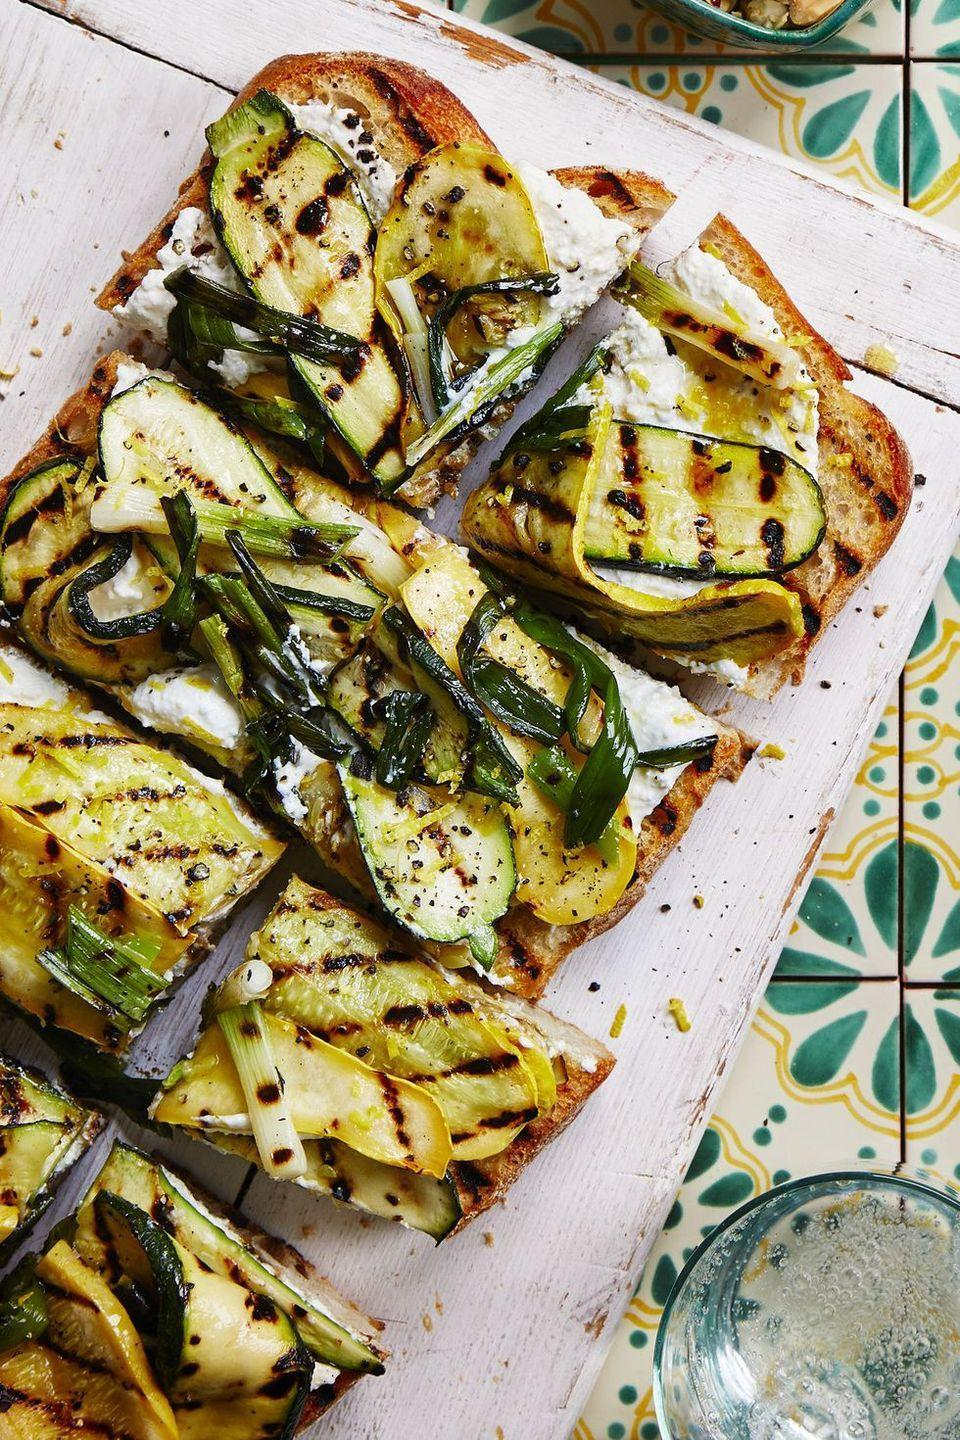 """<p>Transform basic garlic bread into this deliciously light meal with ricotta, garlic, and grilled veggies.</p><p><em><a href=""""https://www.womansday.com/food-recipes/food-drinks/a22469348/grilled-squash-garlic-bread-recipe/"""" rel=""""nofollow noopener"""" target=""""_blank"""" data-ylk=""""slk:Get the Grilled Squash Garlic Bread recipe."""" class=""""link rapid-noclick-resp"""">Get the Grilled Squash Garlic Bread recipe.</a></em></p>"""